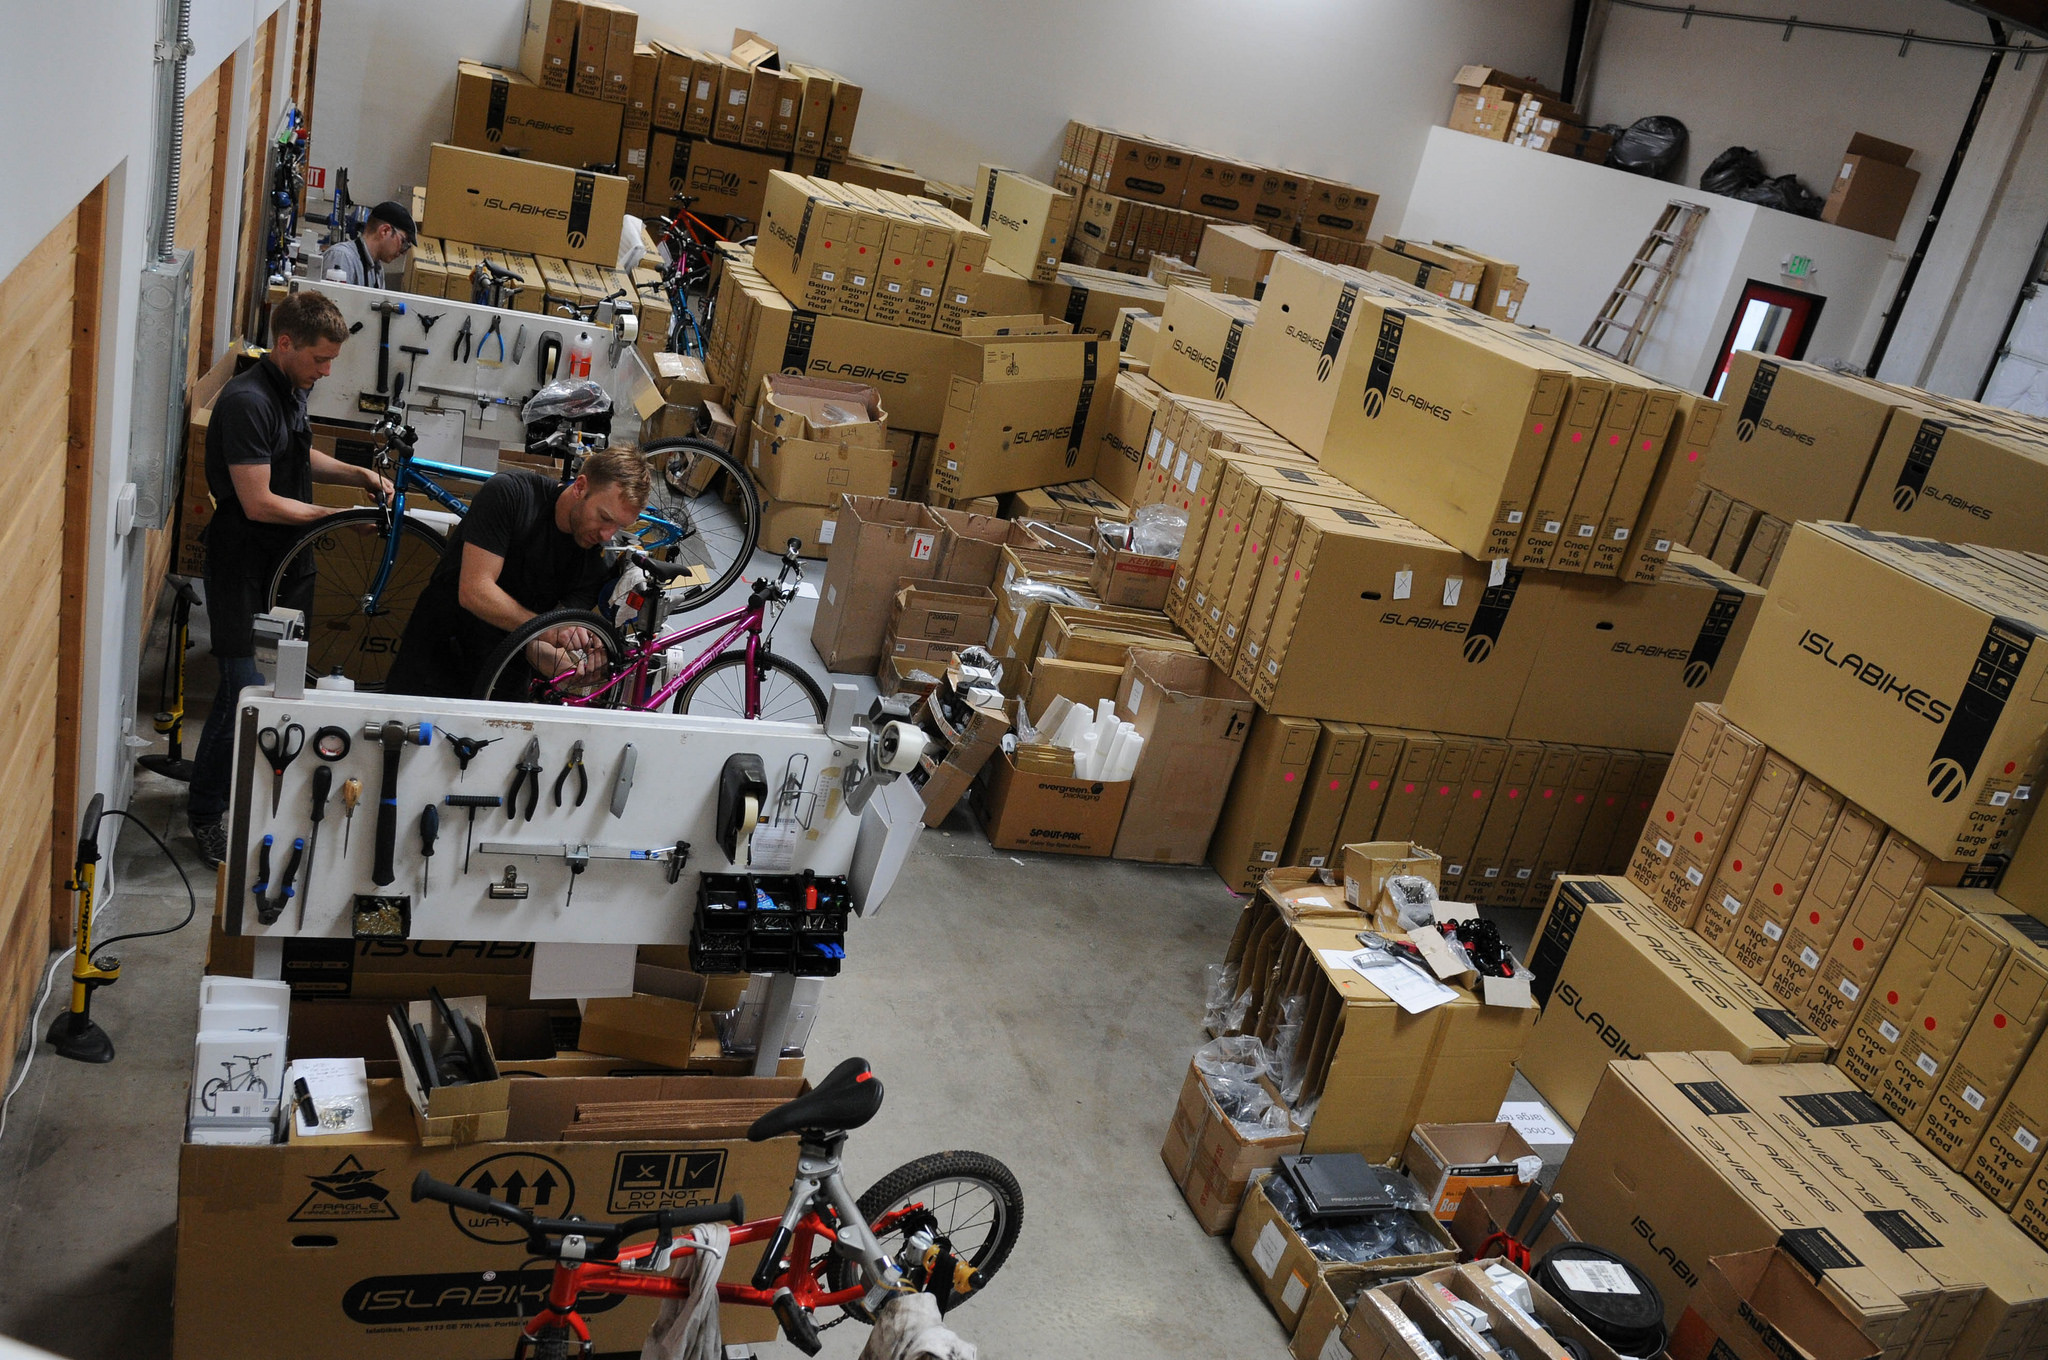 Islabikes to close US headquarters office and warehouse in Portland -  BikePortland org